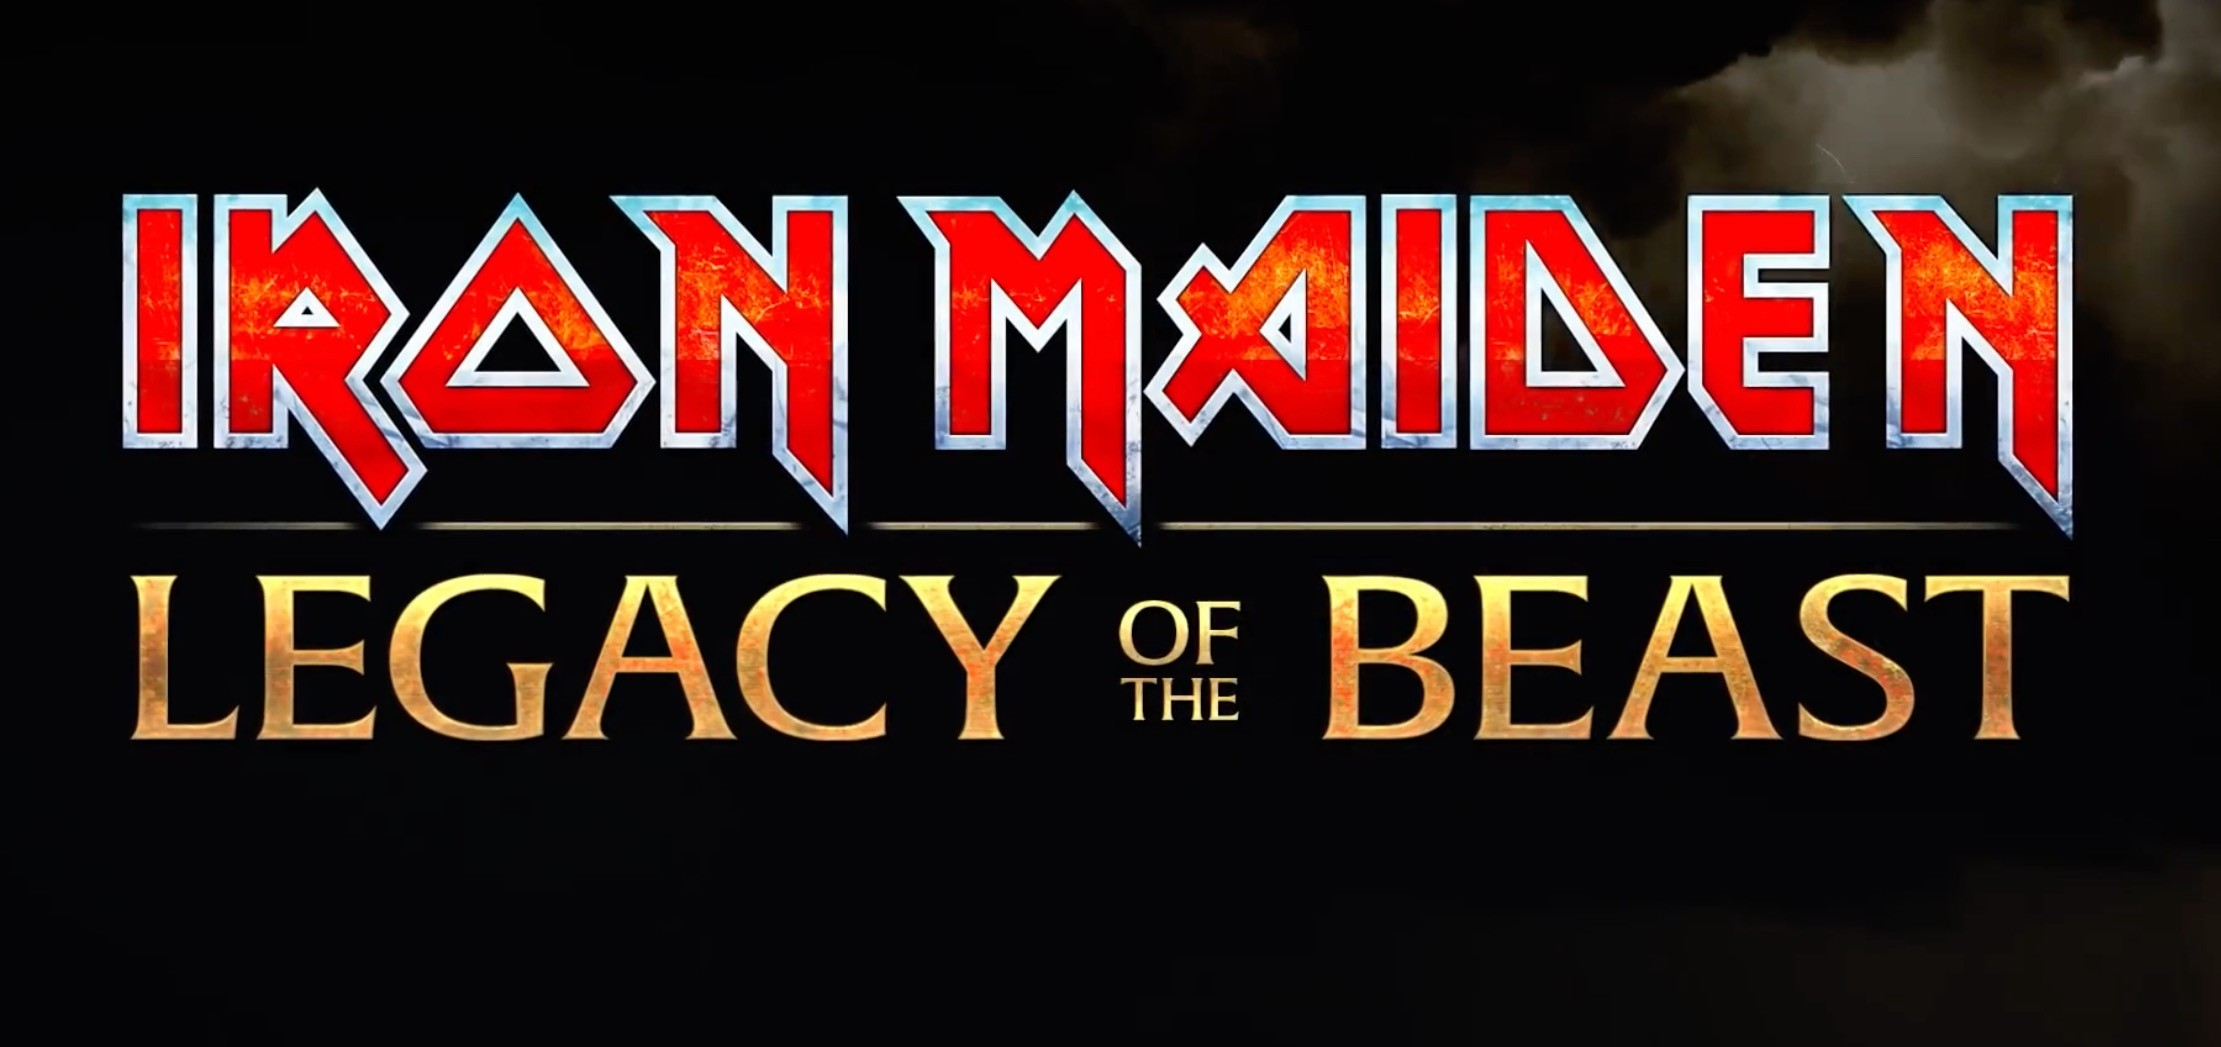 Iron Maiden wird nächster Stern Pinball - Legacy of the Beast - 2018